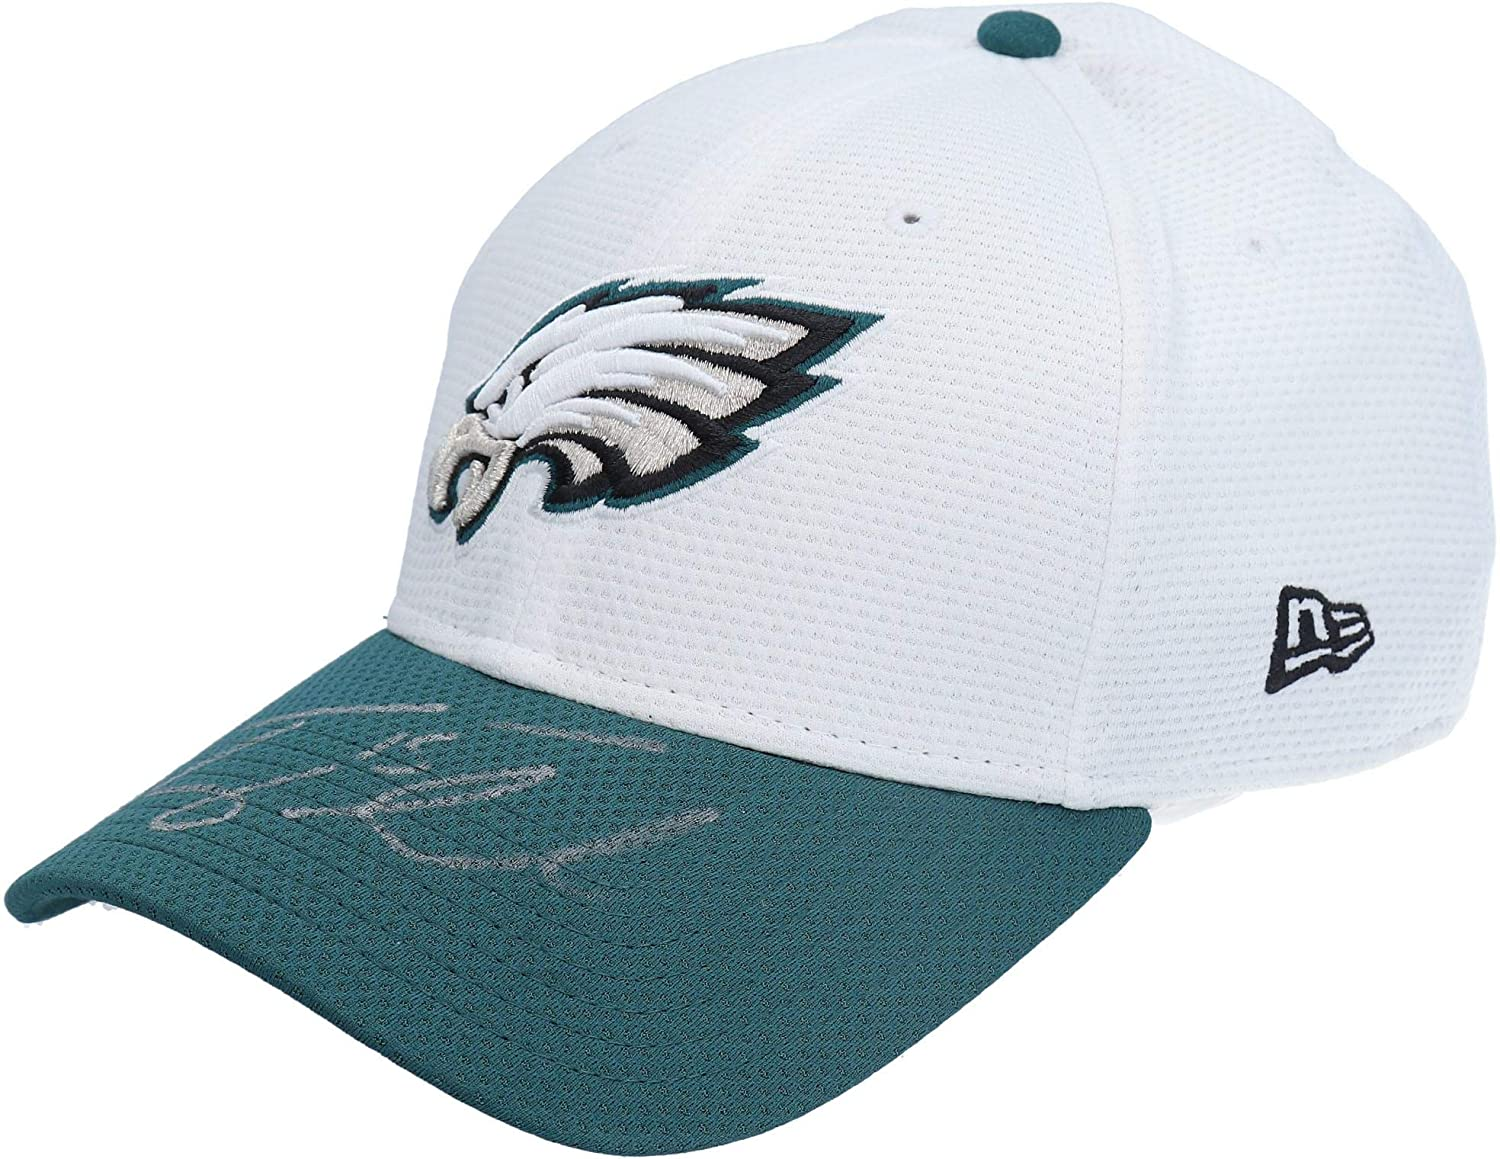 Tim Tebow Philadelphia Eagles Autographed Player-Worn White Cap from the 2015 NFL Pre-Season - AA0051757 - Fanatics Authentic Certified